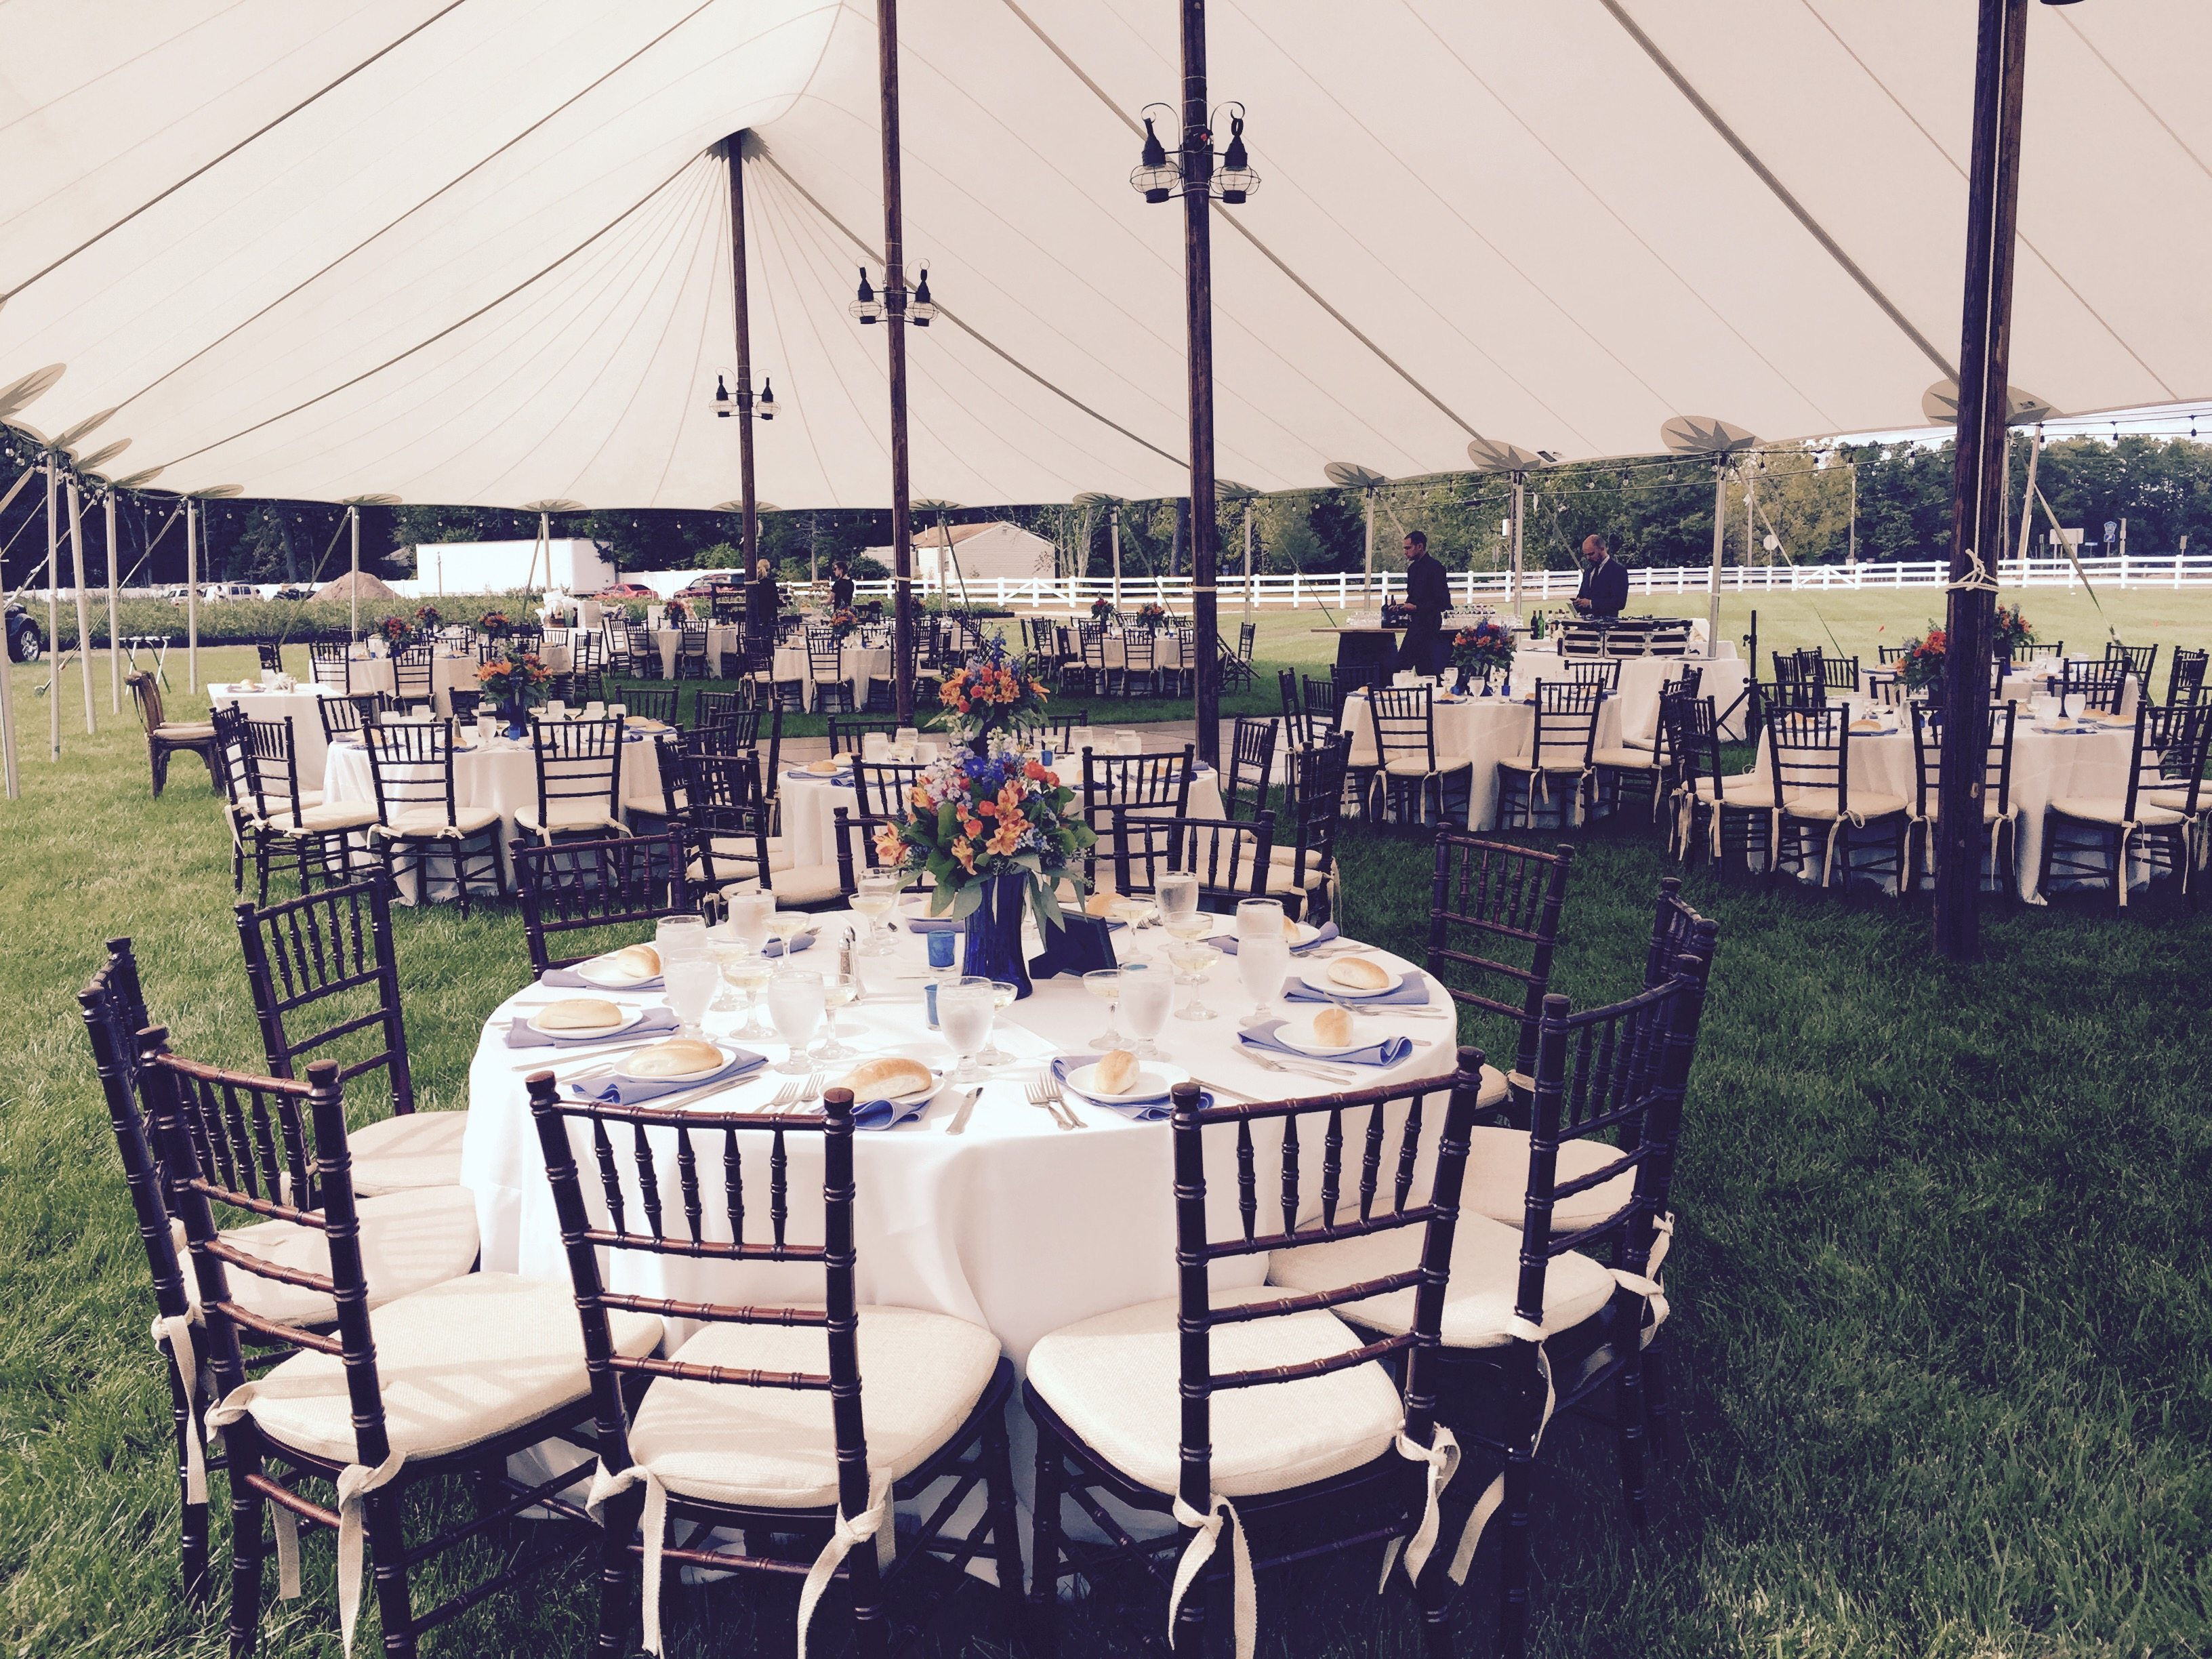 & Sail Cloth Wedding Tents at Farm Weddings - Ocean Tents